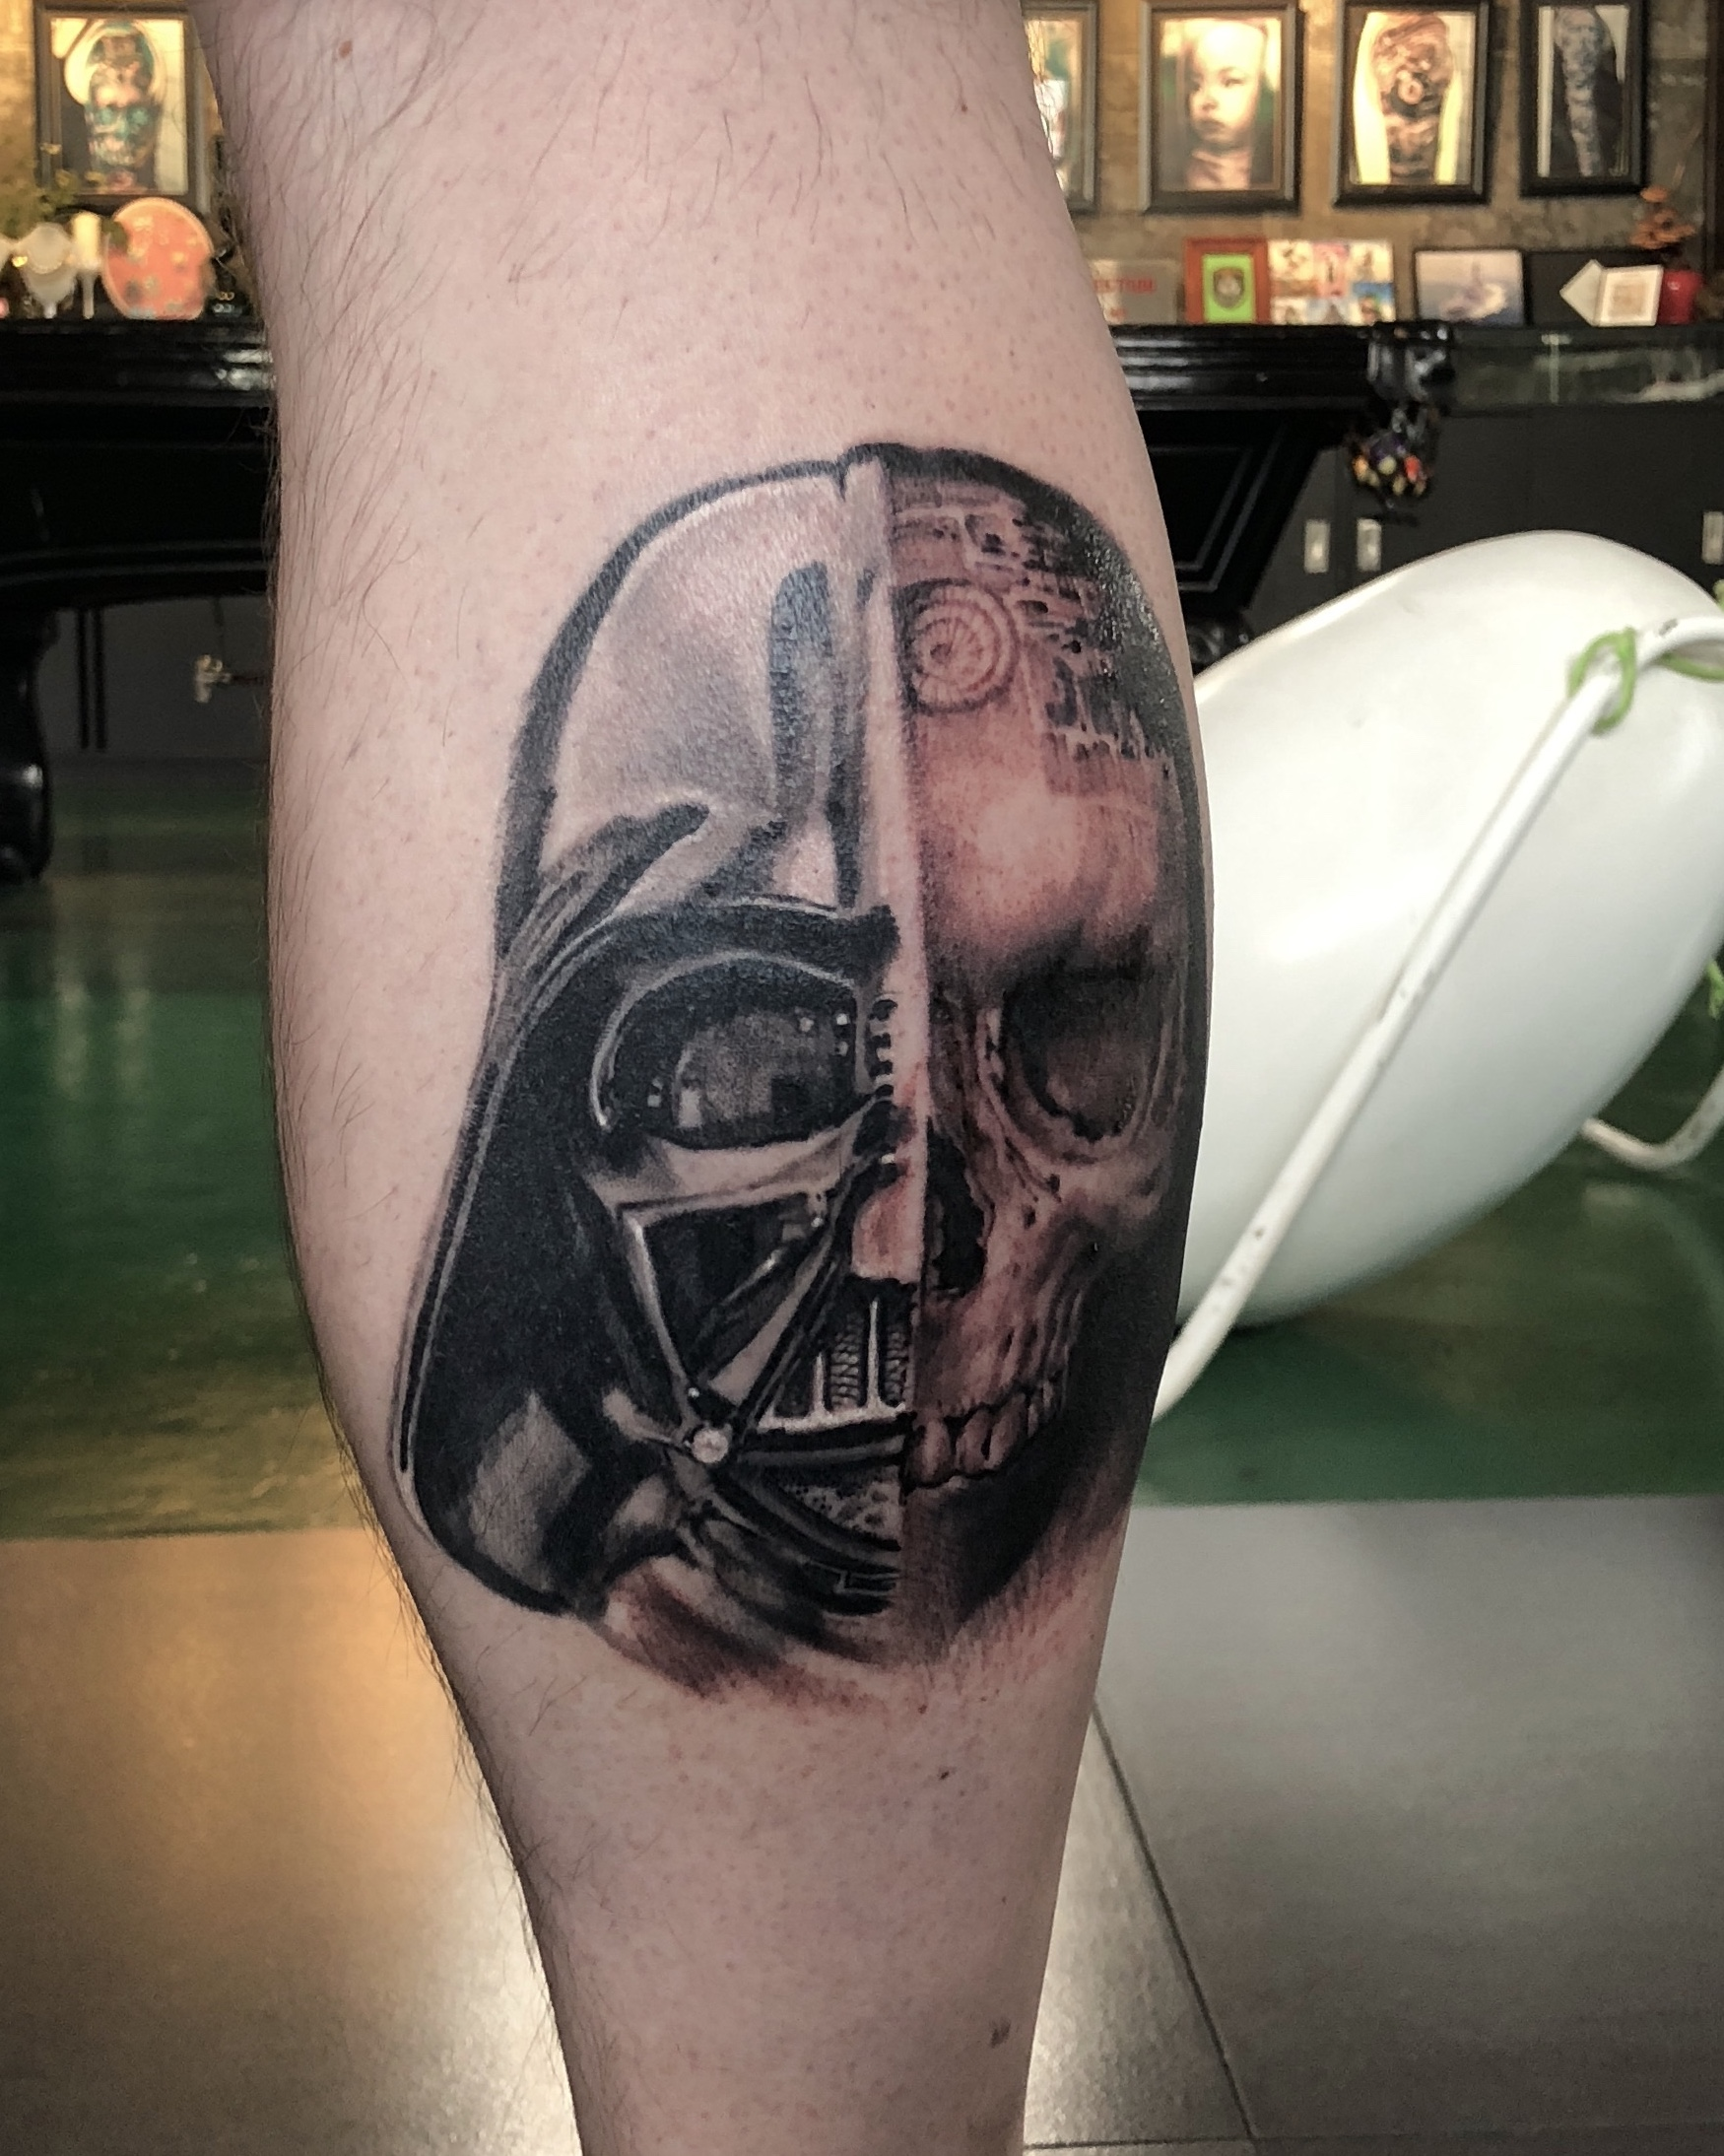 zhuo dan ting tattoo work 卓丹婷纹身作品 star war.